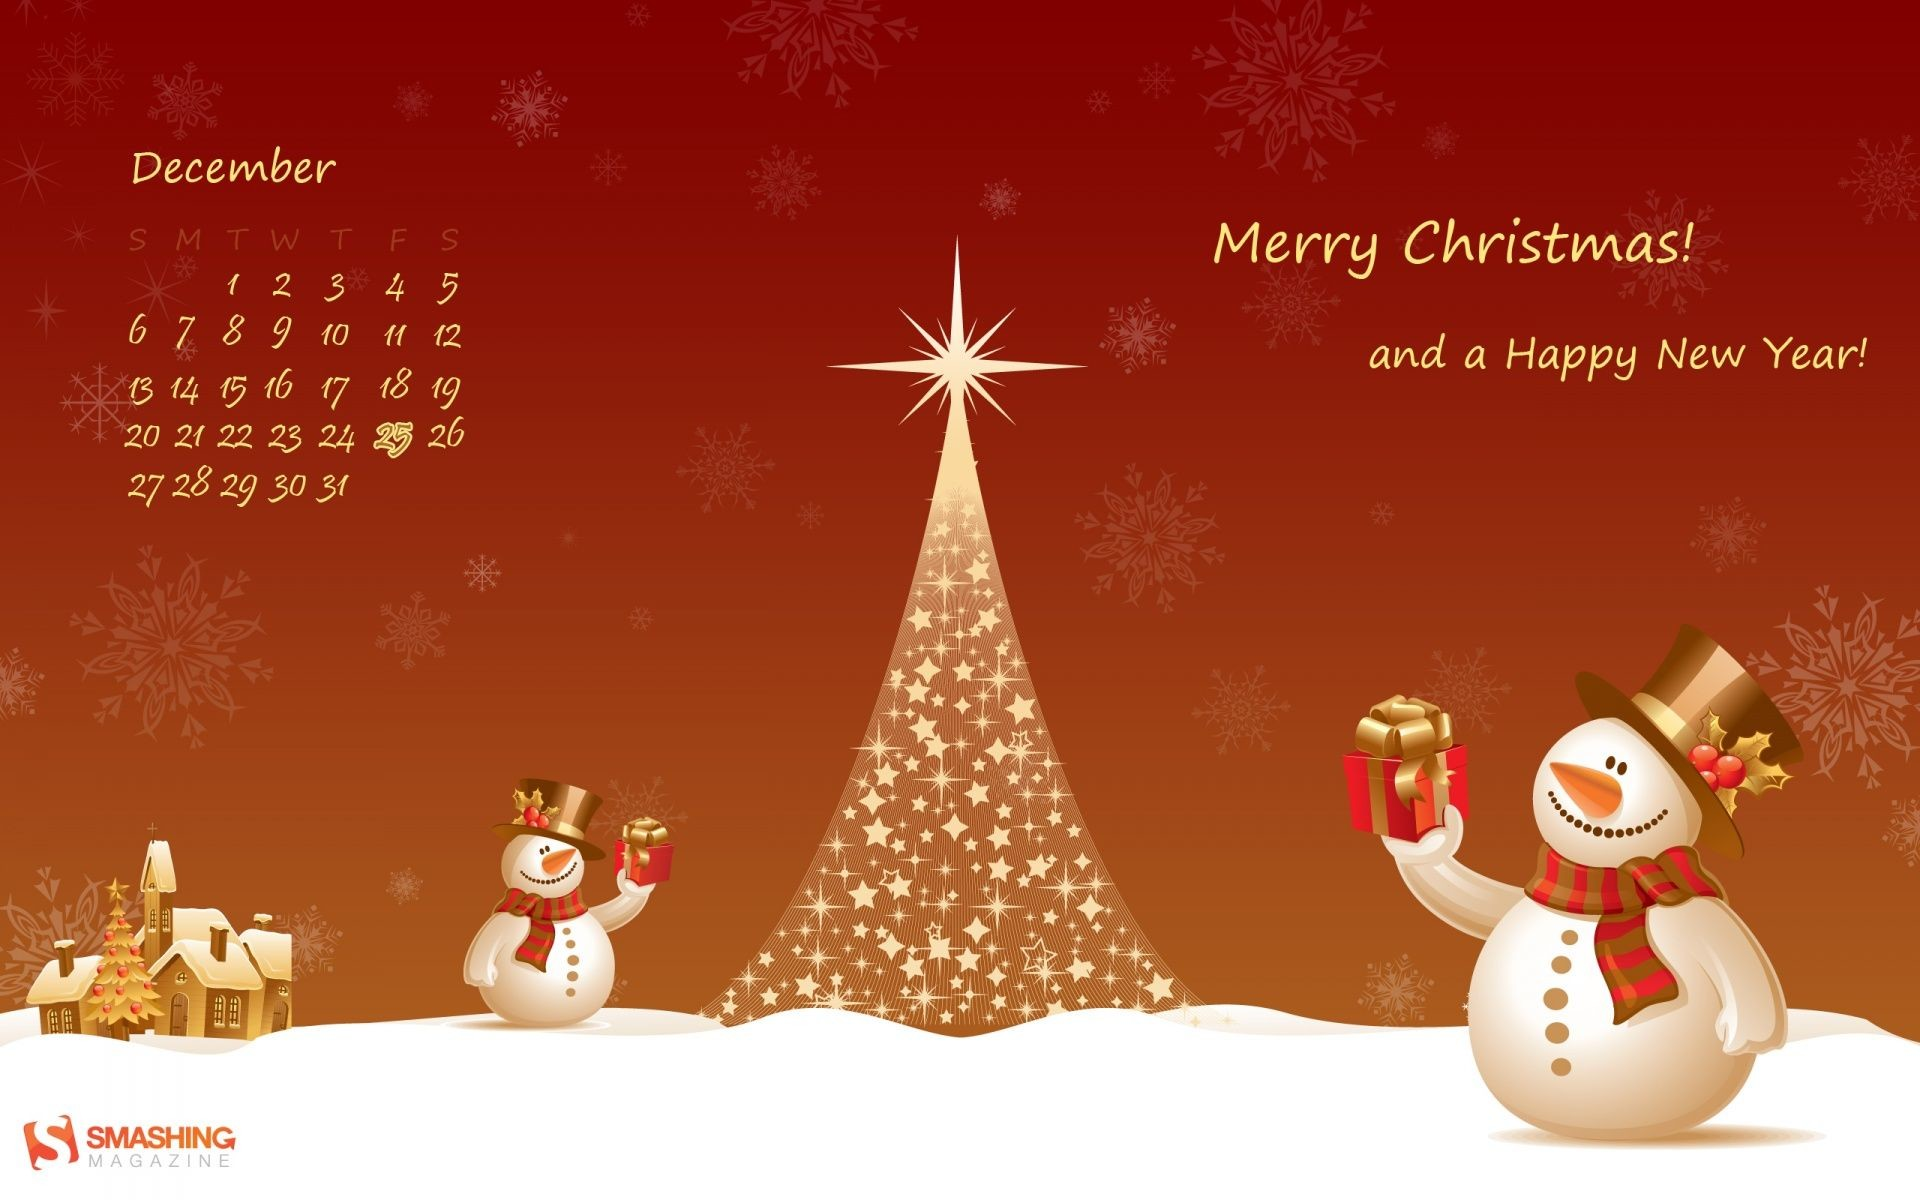 Anatomy and physiology study guide: Desktop Christmas Backgrounds